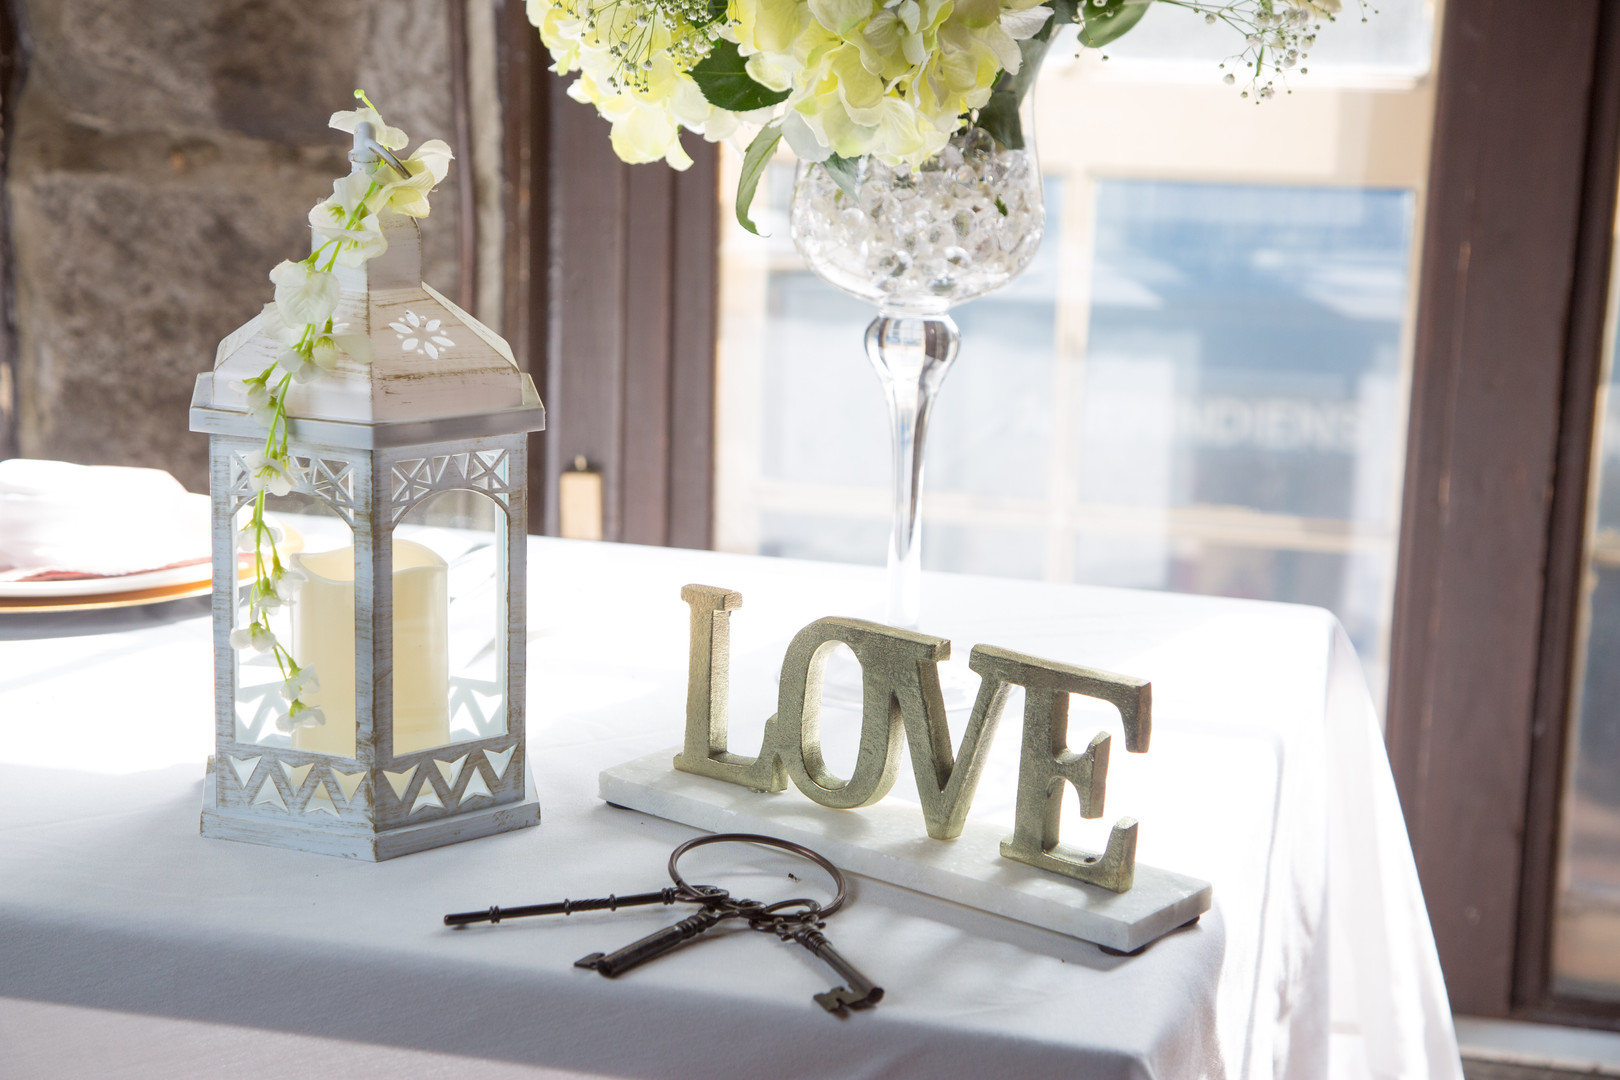 Wedding table : lantern, romantic vintage keys & love sign